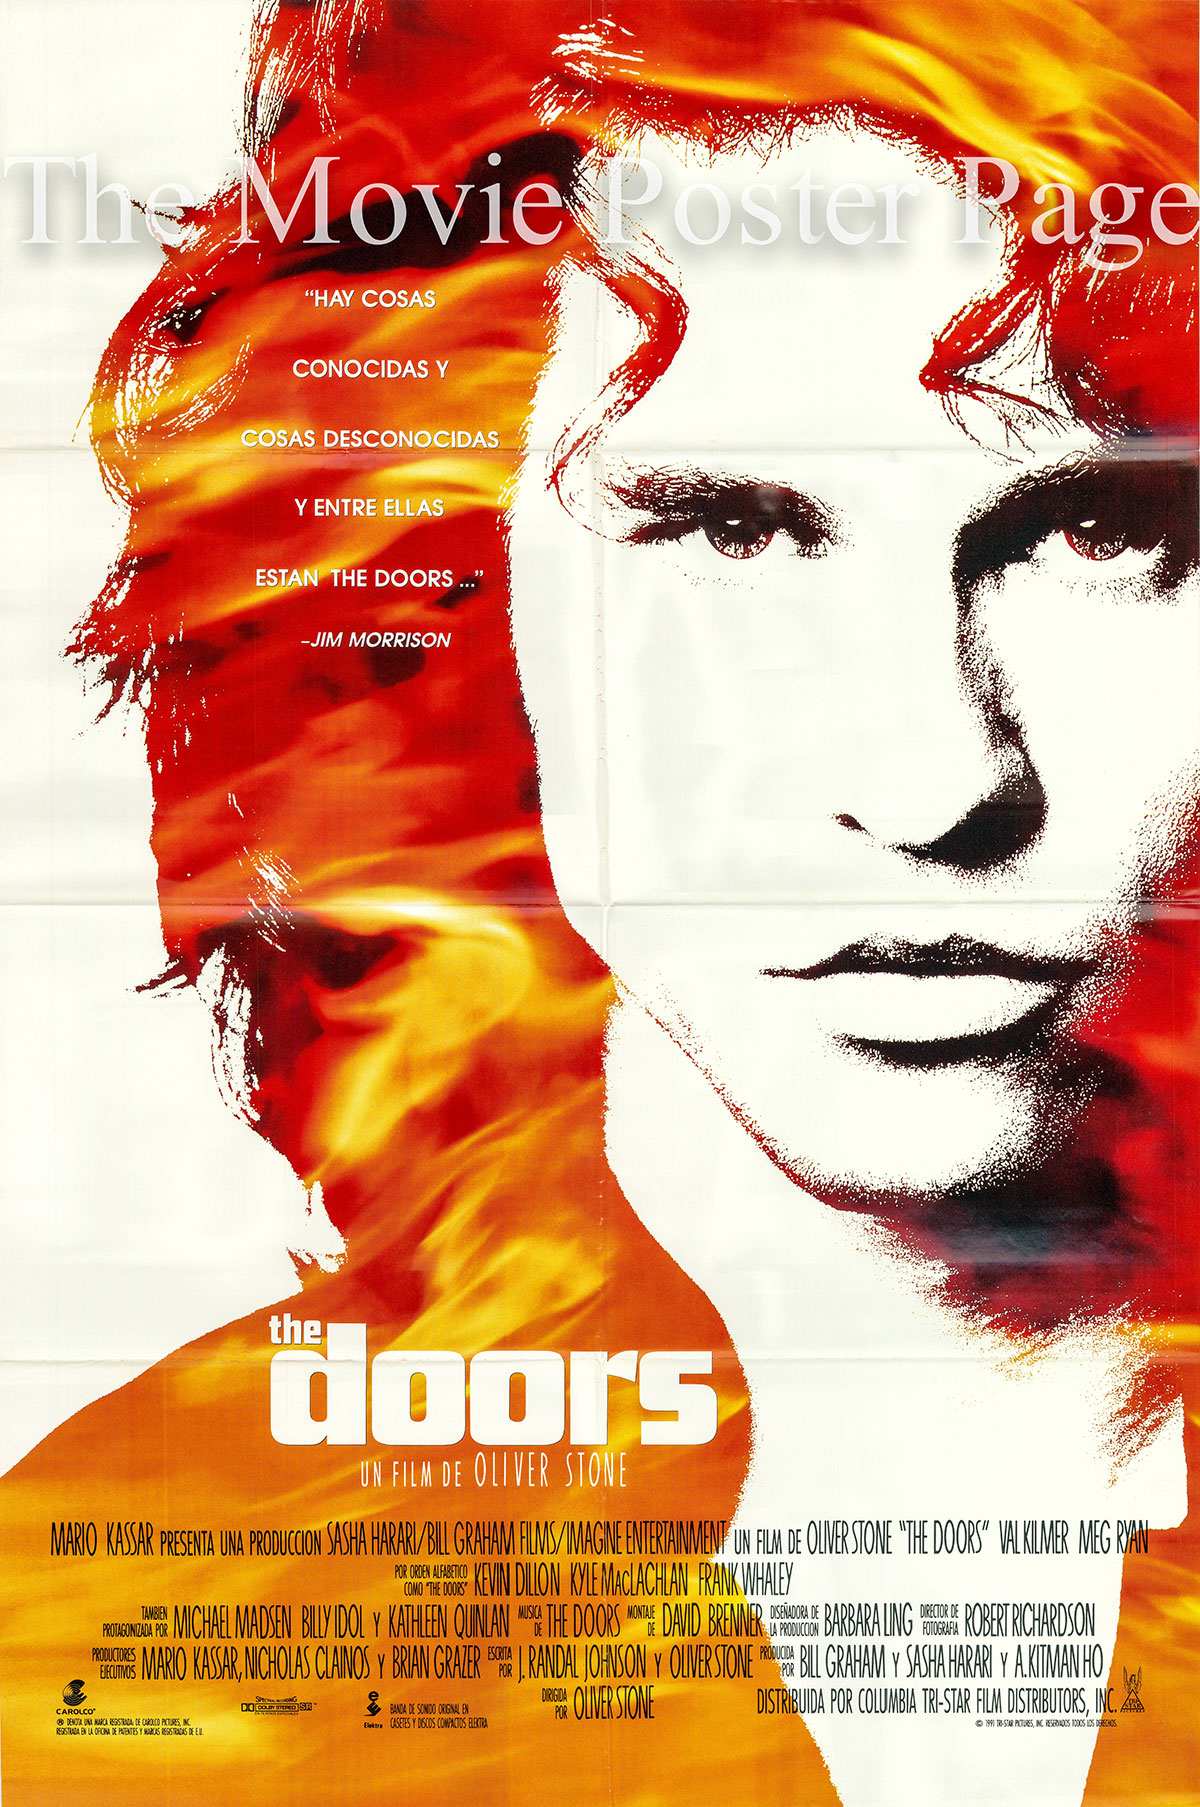 Pictured is a Spanish one-sheet poster for the 1990 Oliver Stone film The Doors starring Val Kilmer as Jim Morrison.